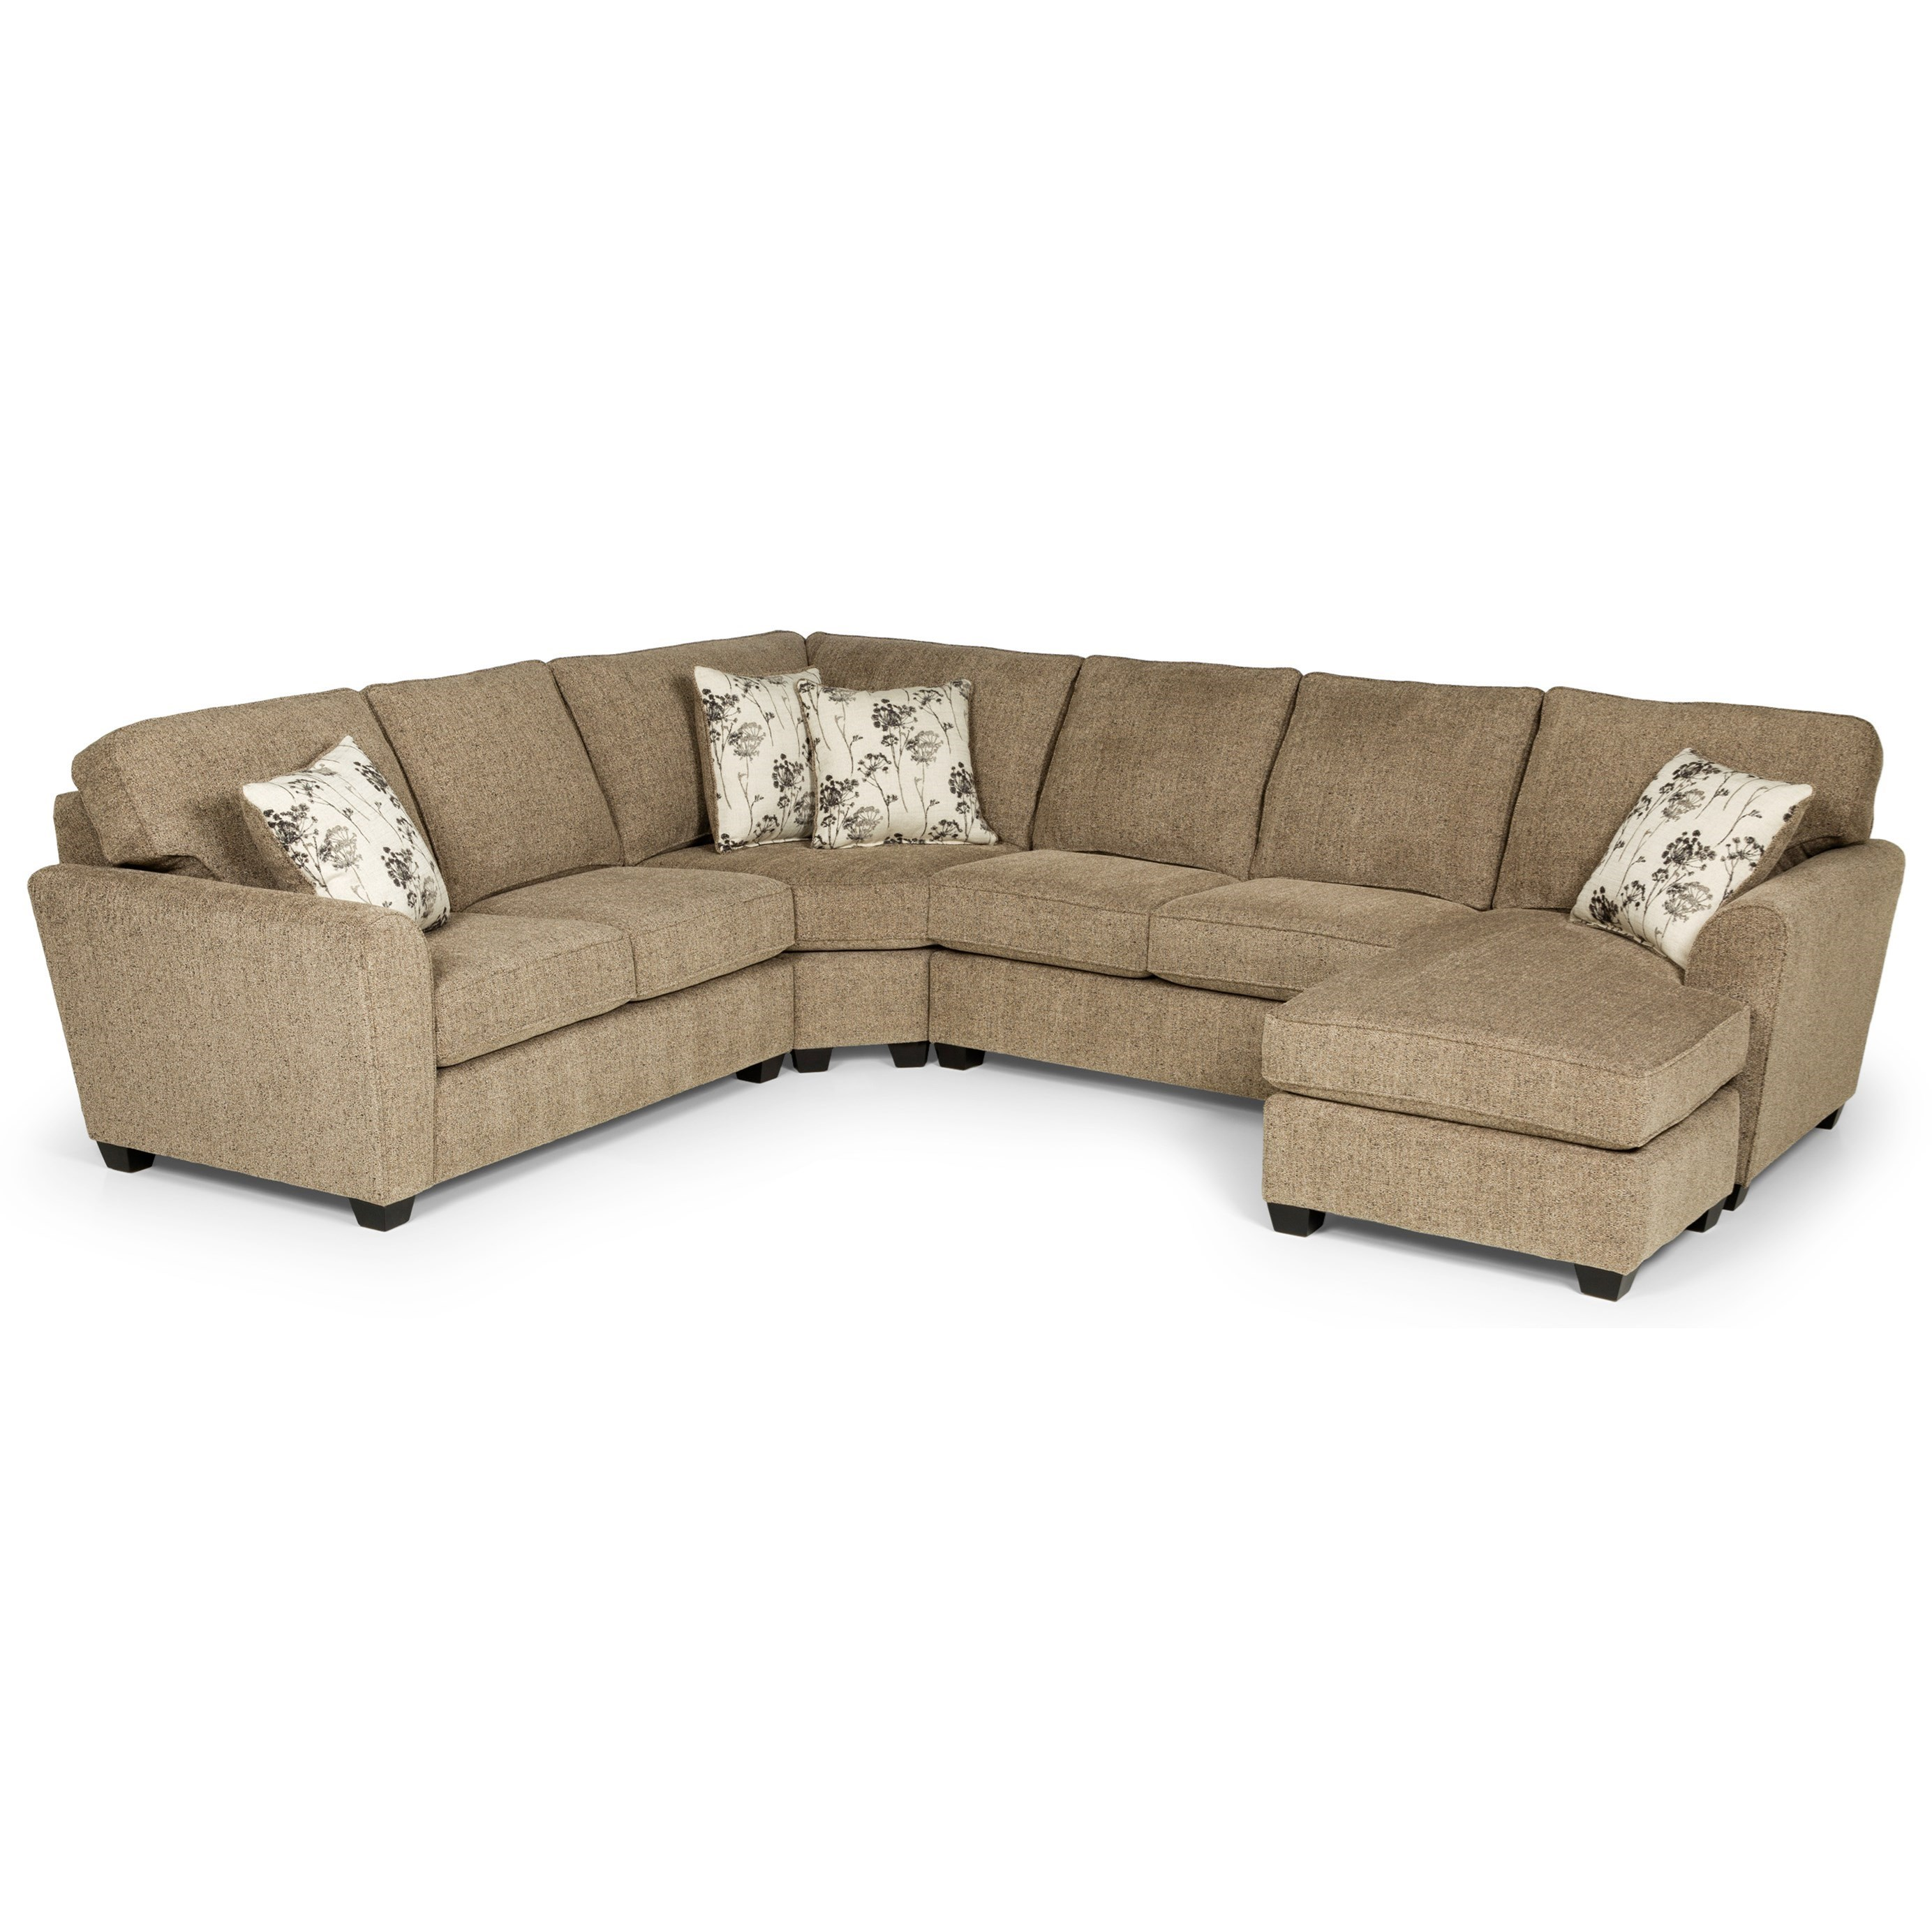 543 5-Seat Sectional Sofa w/ LAF Basic Sleeper by Stanton at Wilson's Furniture